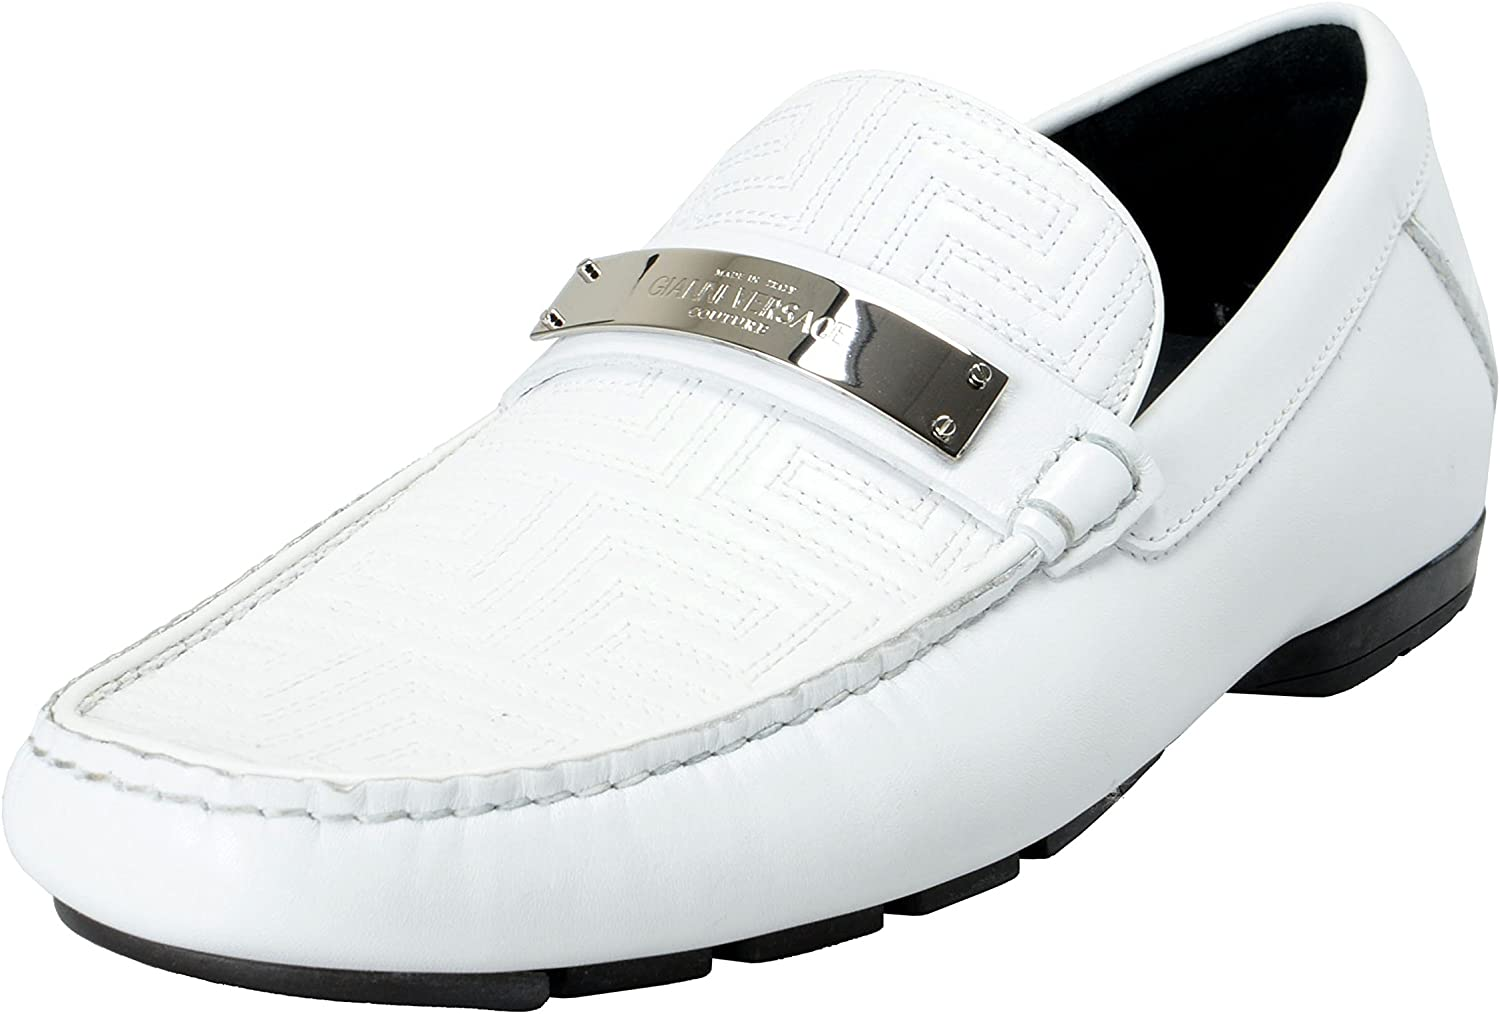 White Moccasins Loafers Slip On Shoes